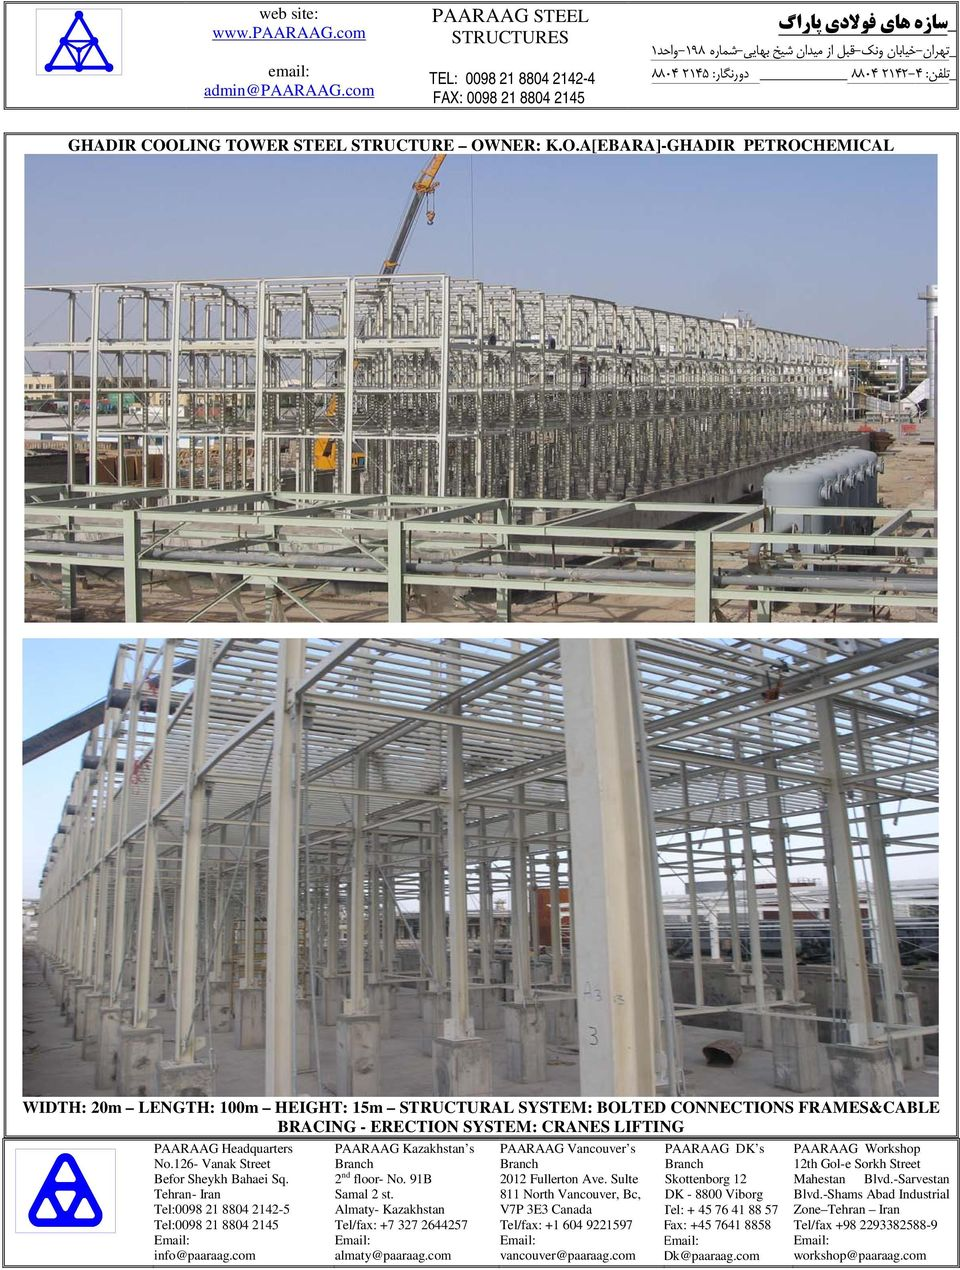 ER STEEL STRUCTURE OW